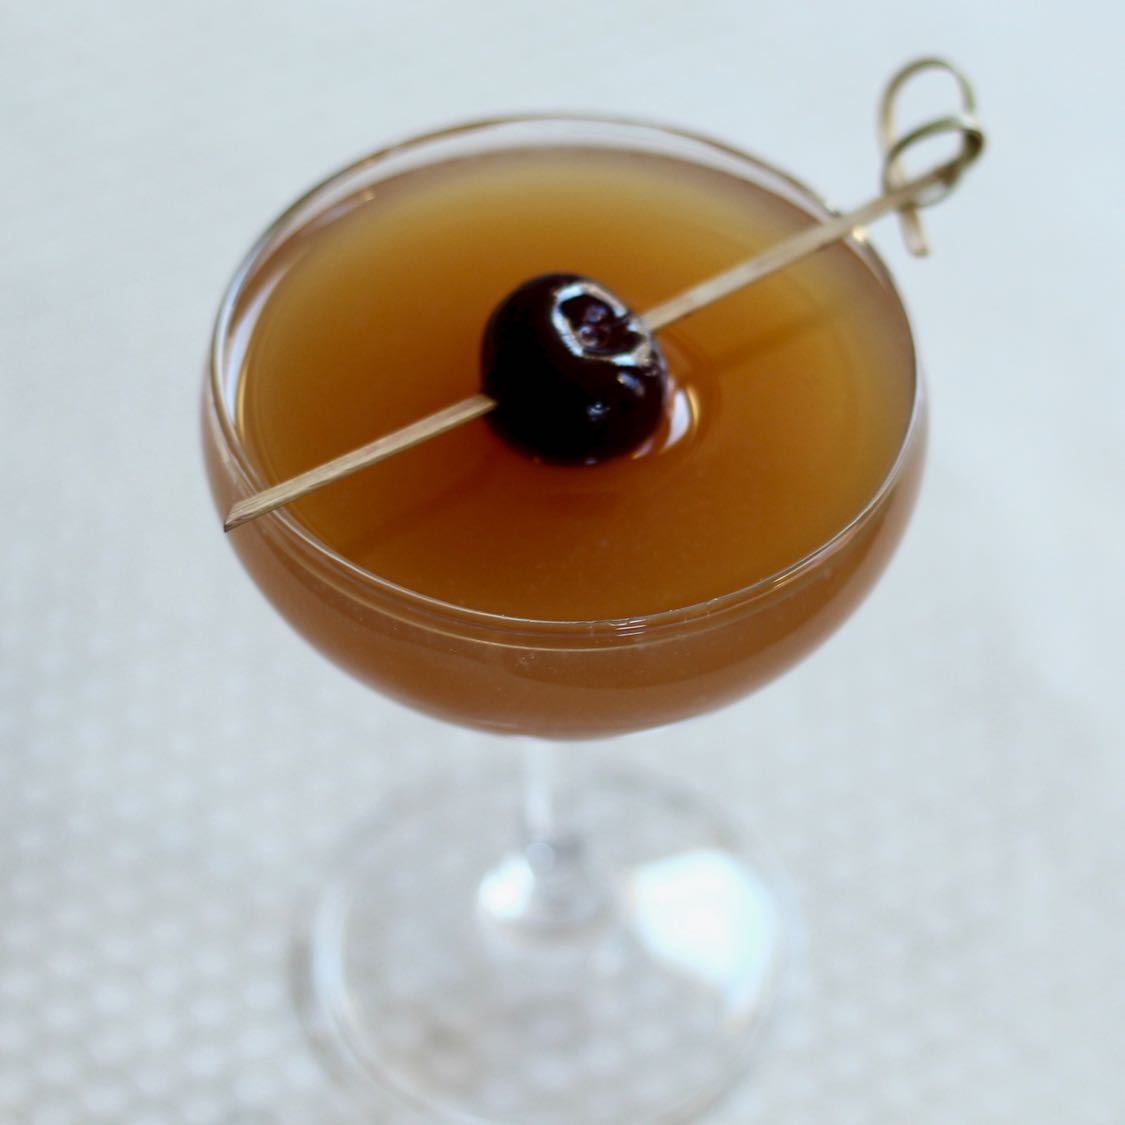 Golden Glow - A Refreshing Whiskey & Rum Cocktail